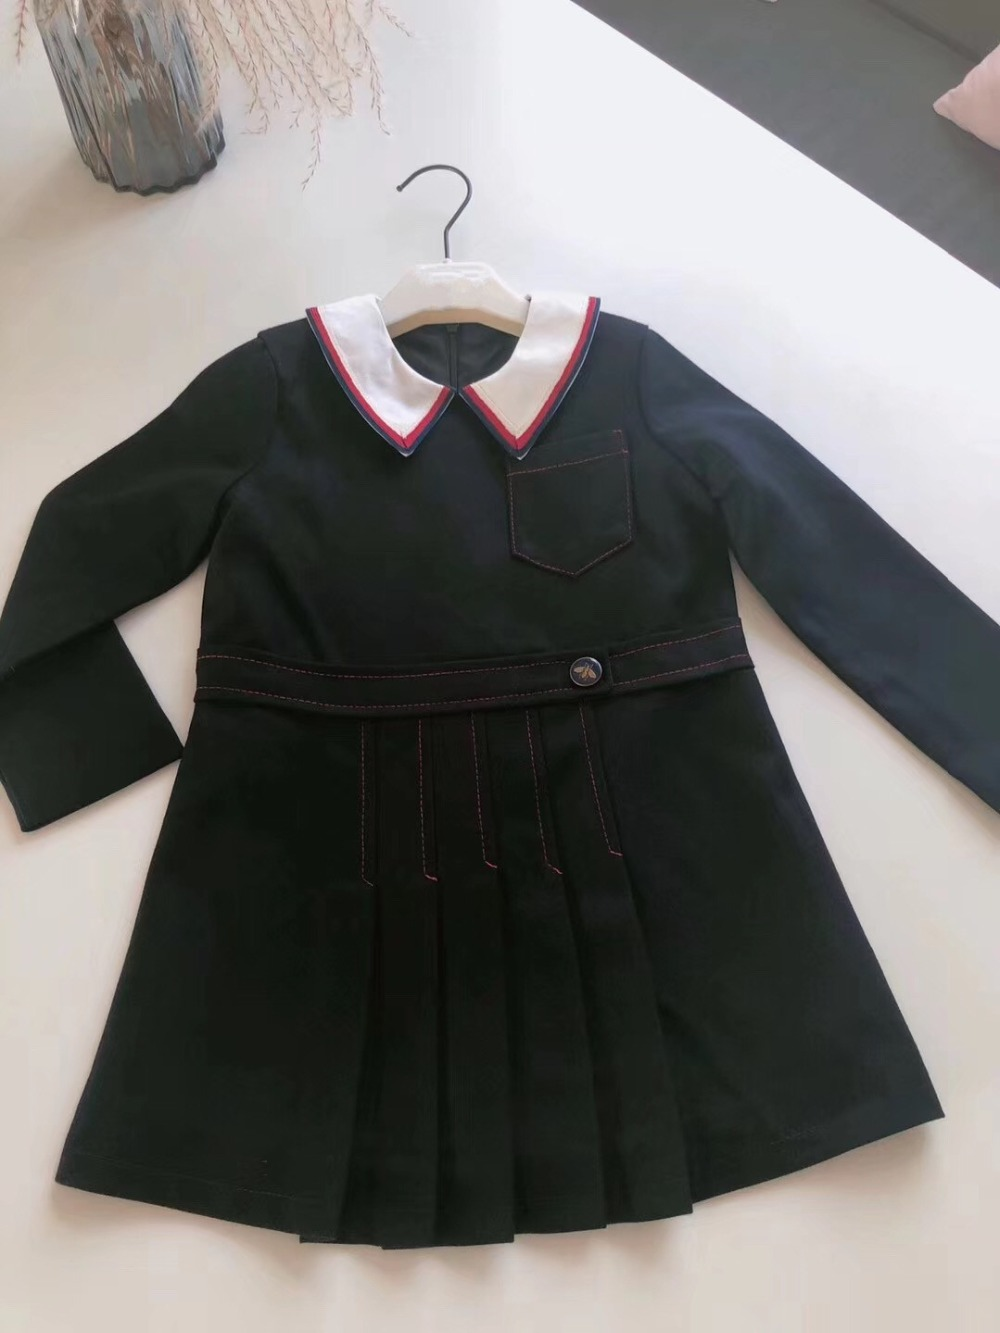 2018 New Autumn Winter Girls Dress School Dresses For Girls O neck Long Sleeve Kids Dresses A Line Children Clothes new summer fashion women s clothing striped printing chiffon rayon a line long dress o neck female half sleeve plus size dresses